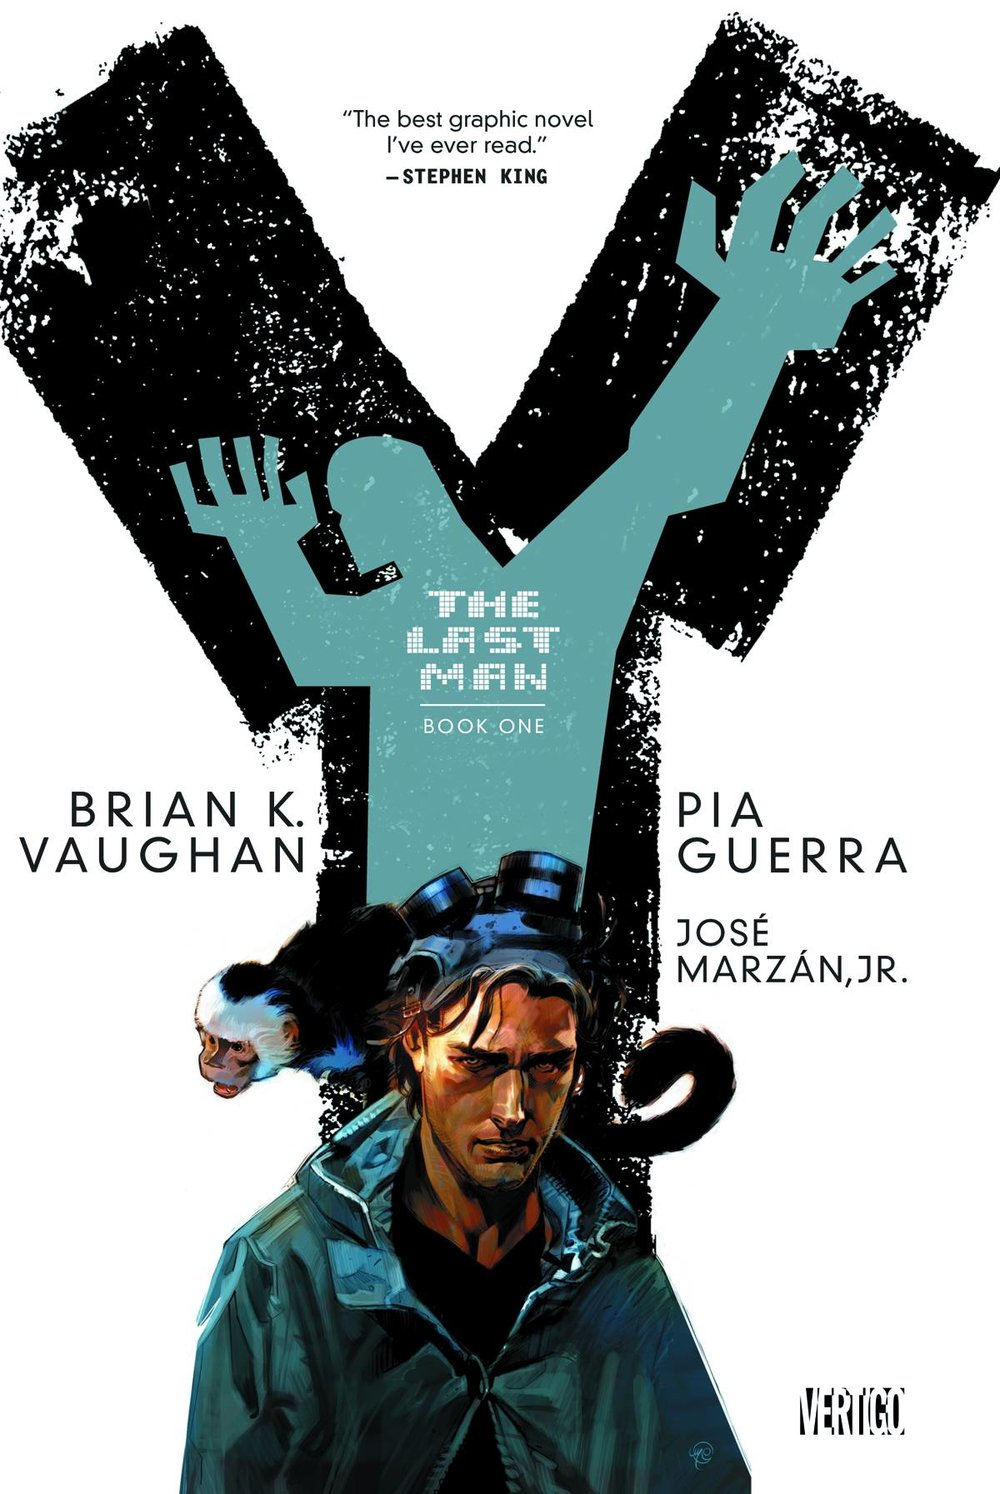 Y the Last Ban TP Book 1 - Mike's PickWriter: Brian K. VaughanArtists: Pia Guerra, José MarzanIn 2002, Brian K. Vaughan (Saga, Paper Girls) and Pia Guerra (Spider-Man Unlimited) unleashed Y the Last Man on an unsuspecting world.  It almost immediately became my favorite series, at the time.  The Vertigo series explores a world where all male mammals were killed off by a mystery plague except for one man and his pet monkey.  The potential for cheese or camp was high.  Instead, this post-apocalyptic tale opted for a more thoughtful nuanced approach.  What militaries would still be operational?  Would governments be able to maintain order or would the world fall to chaos?  What would be the impact on religion, culture, and class structures?  Additionally, gender politics are front and center, making the book seem especially relevant still.  It's not all just subtext and speculation, though.  This is a wonderfully character centric book.  Yorick, Agent 355, and Dr. Allison Mann, along with a cadre of notable supporting characters, are fleshed out in detail.  The fantastic premise is grounded by the authenticity of our leads.  Completed in 2008, the series is available in its entirety in five very affordable volumes.  It receives my highest possible recommendation.  Please note, though, that Y the Last Man is intended for mature readers as it contains harsh language, adult themes, and frank depictions of sexuality and violence.